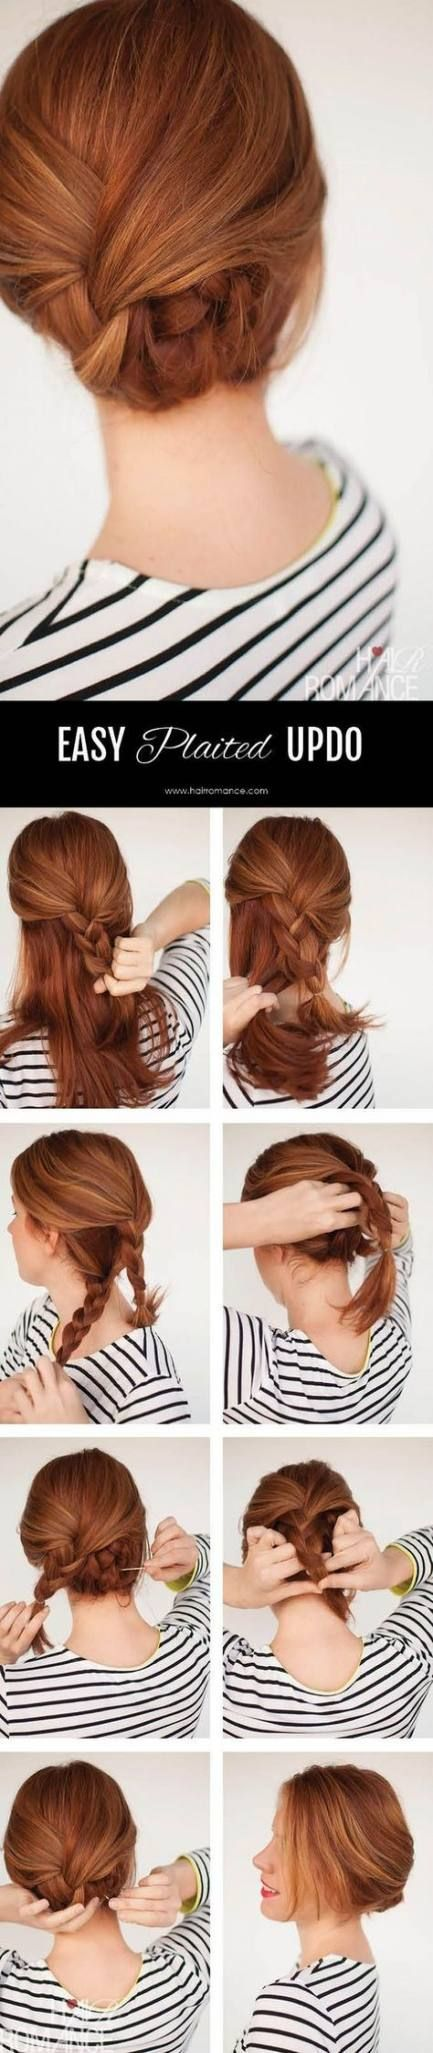 40+ Ideas Hairstyles Diy Tutorials Every Girl For 2019